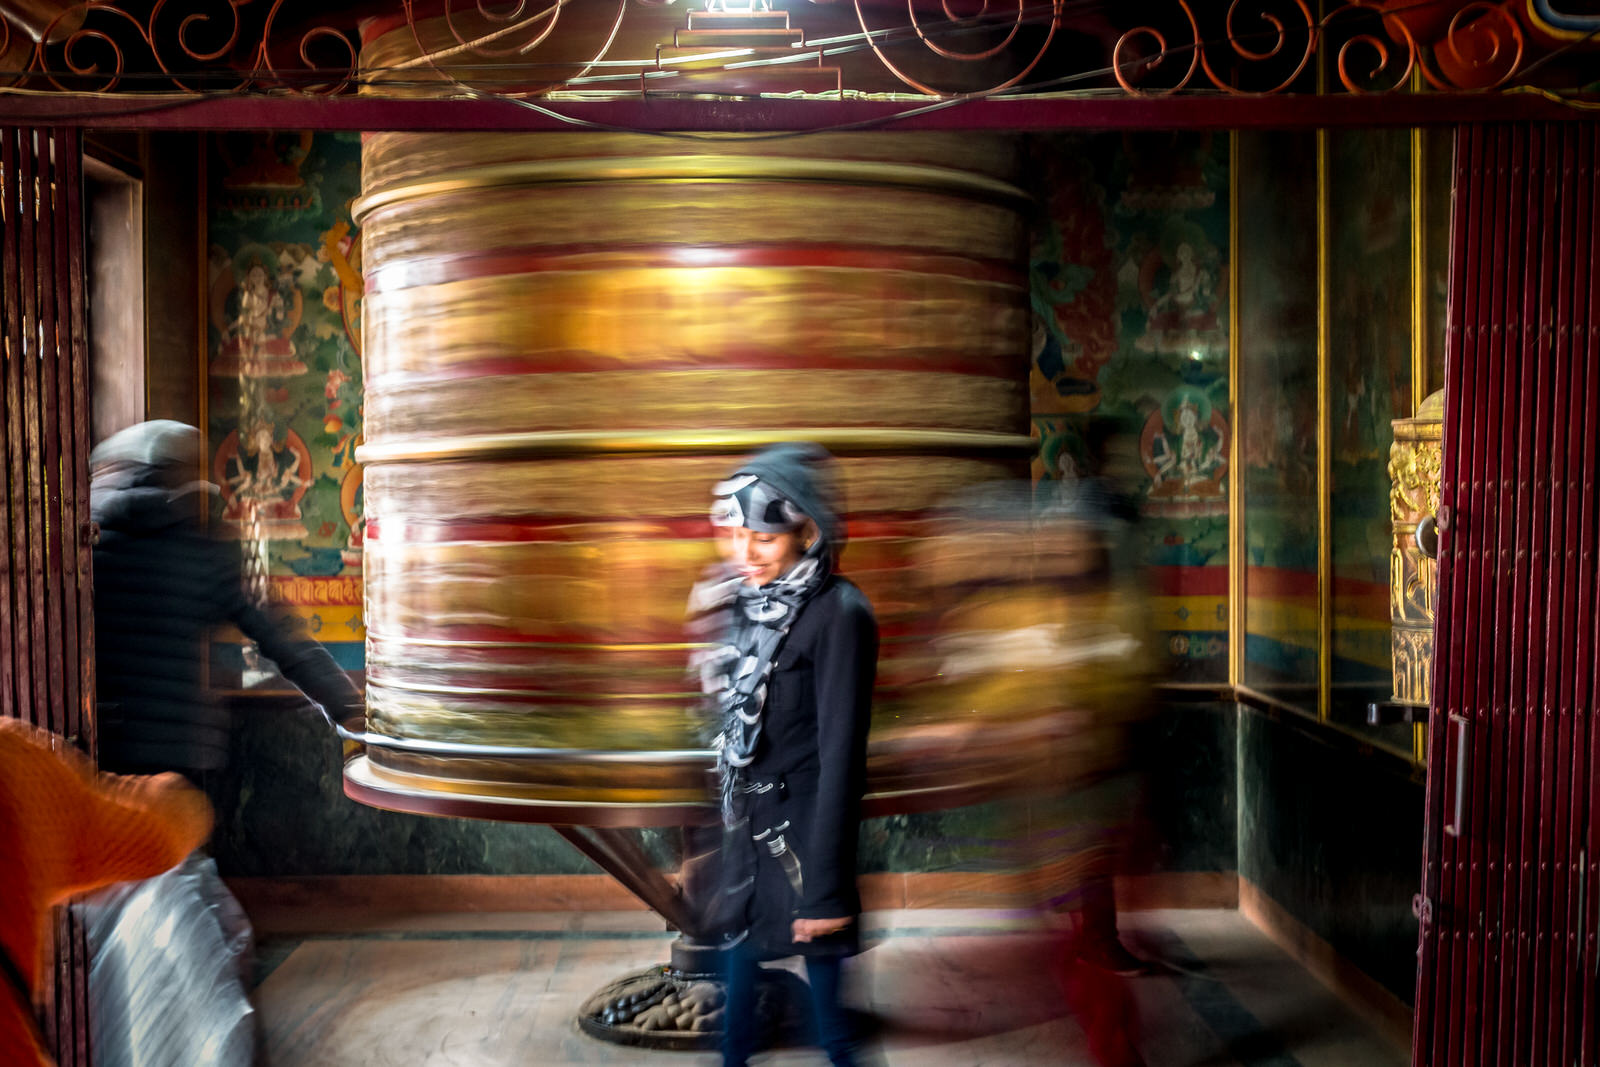 A giant prayer wheel being spun. Traditionally, the mantra Om Mani Padme Hum is written in Sanskrit on the outside.